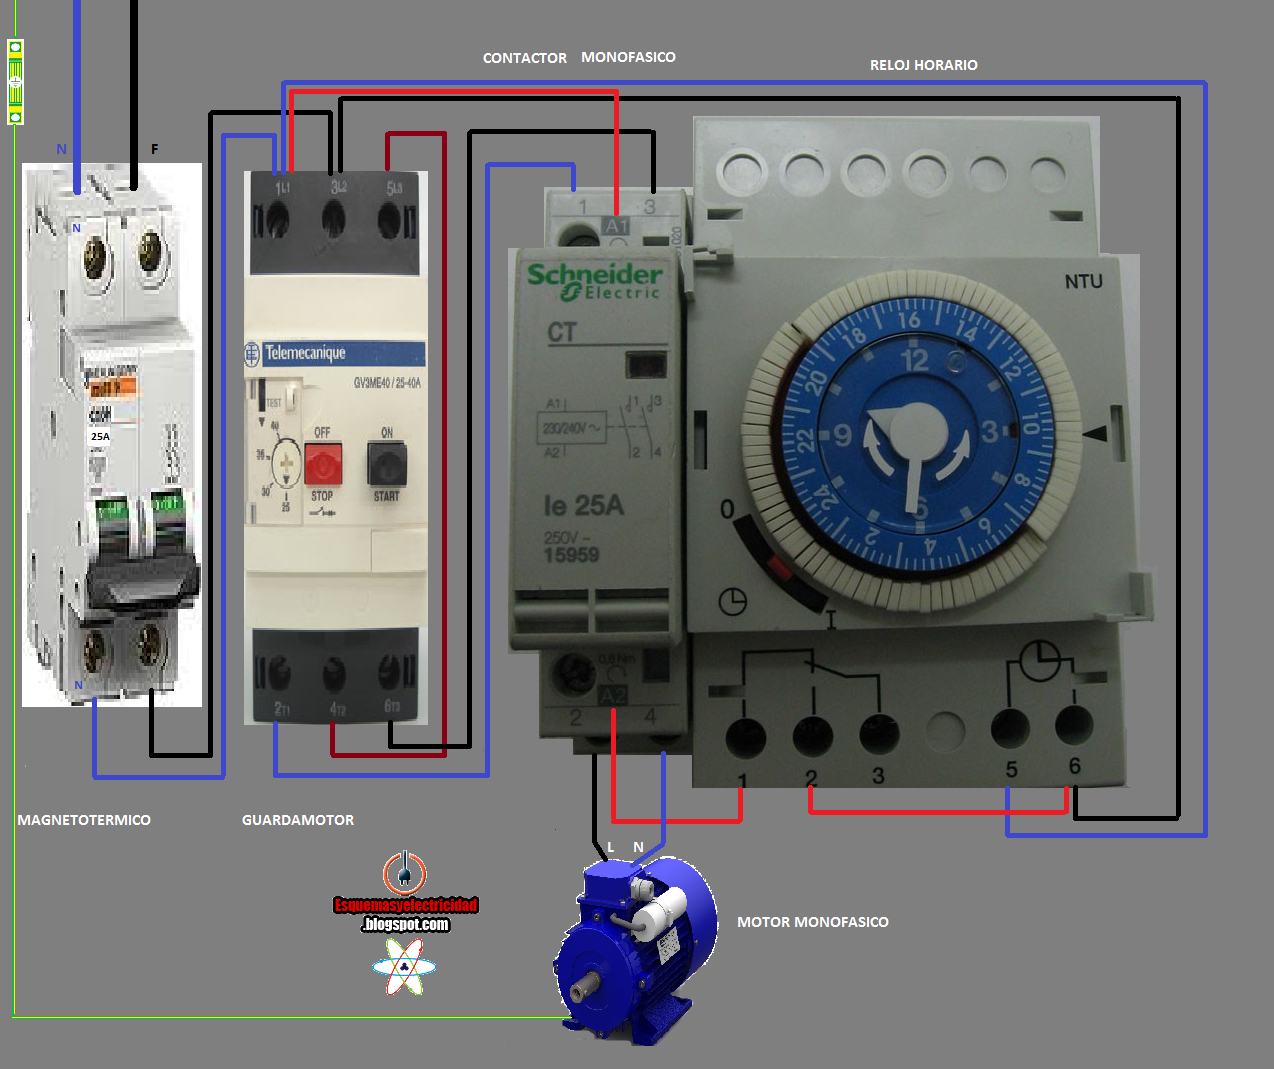 Electrical Lighting Contactor Wiring Diagram Diagrams For Light Switches And Watch Hours Eletrical